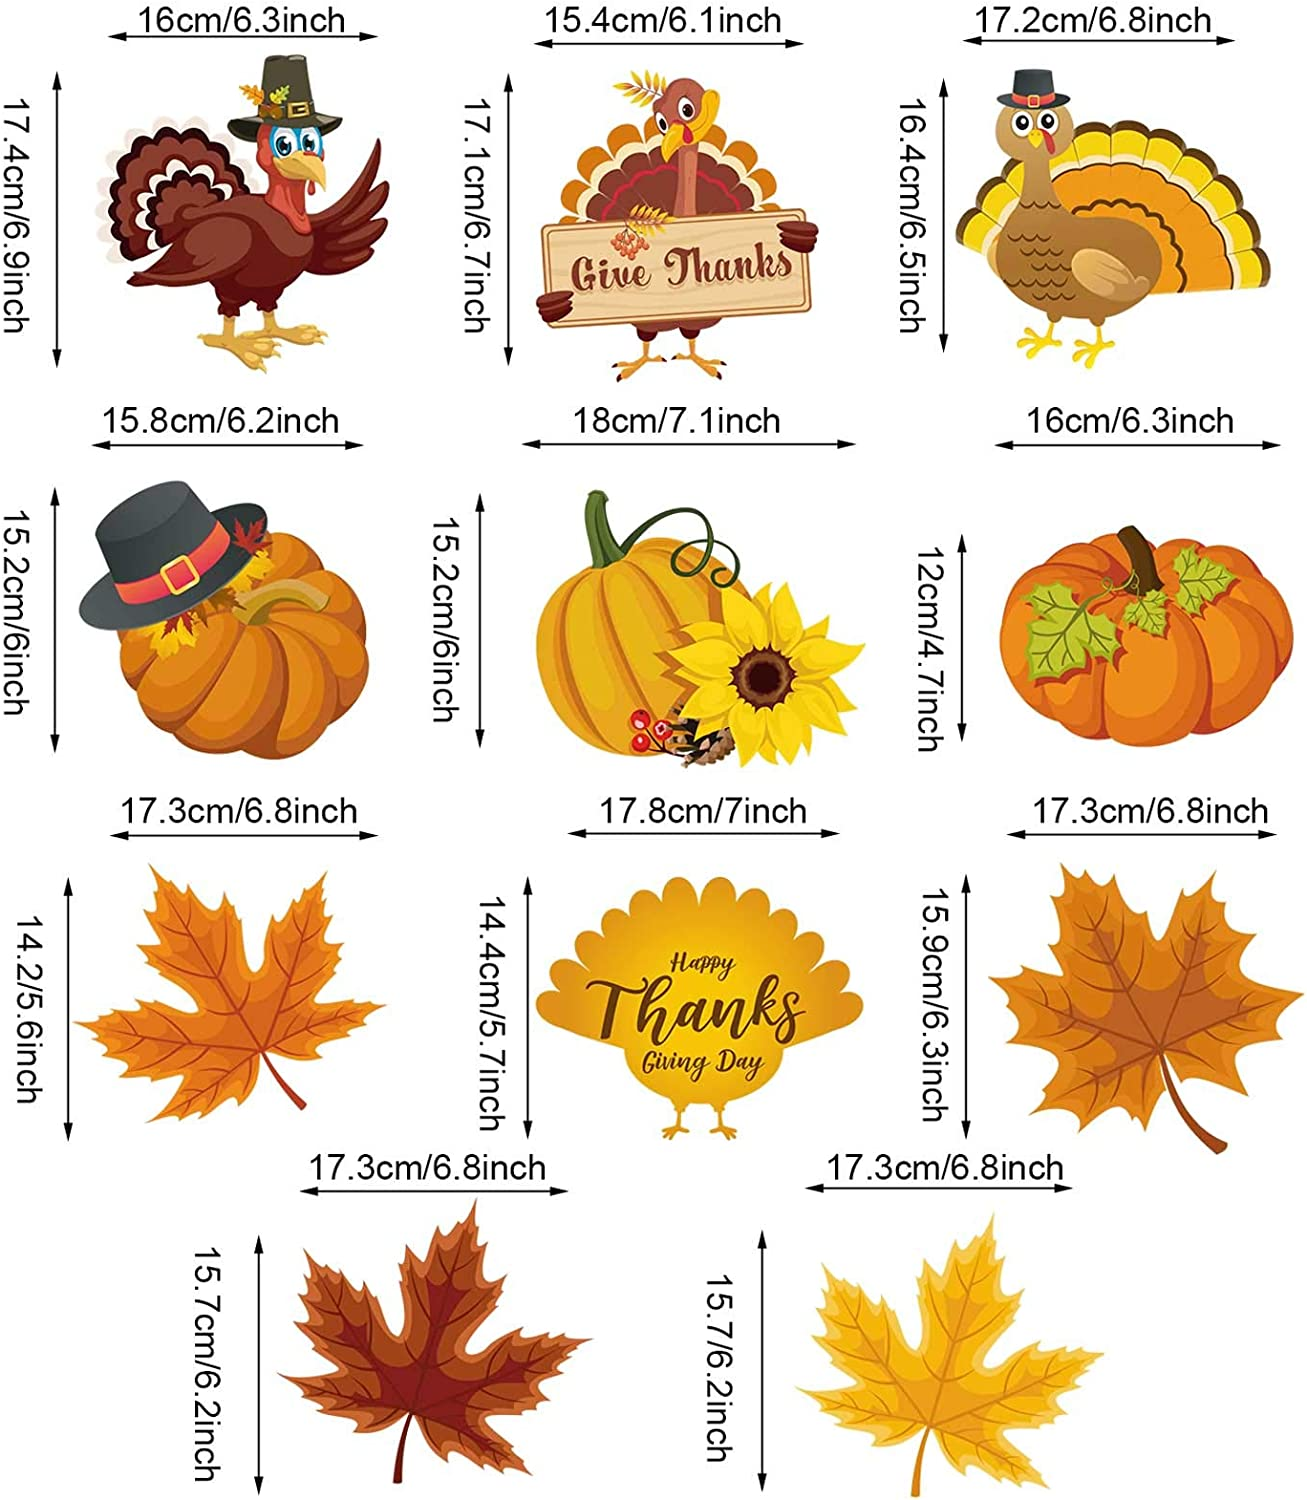 Turkey Pumpkin Chicken Maple Cutouts Hanging Swirls Ceiling Decorations for Autumn Thanksgiving Party Supplies Decorations 30 Count Blulu Thanksgiving Hanging Swirls Decorations